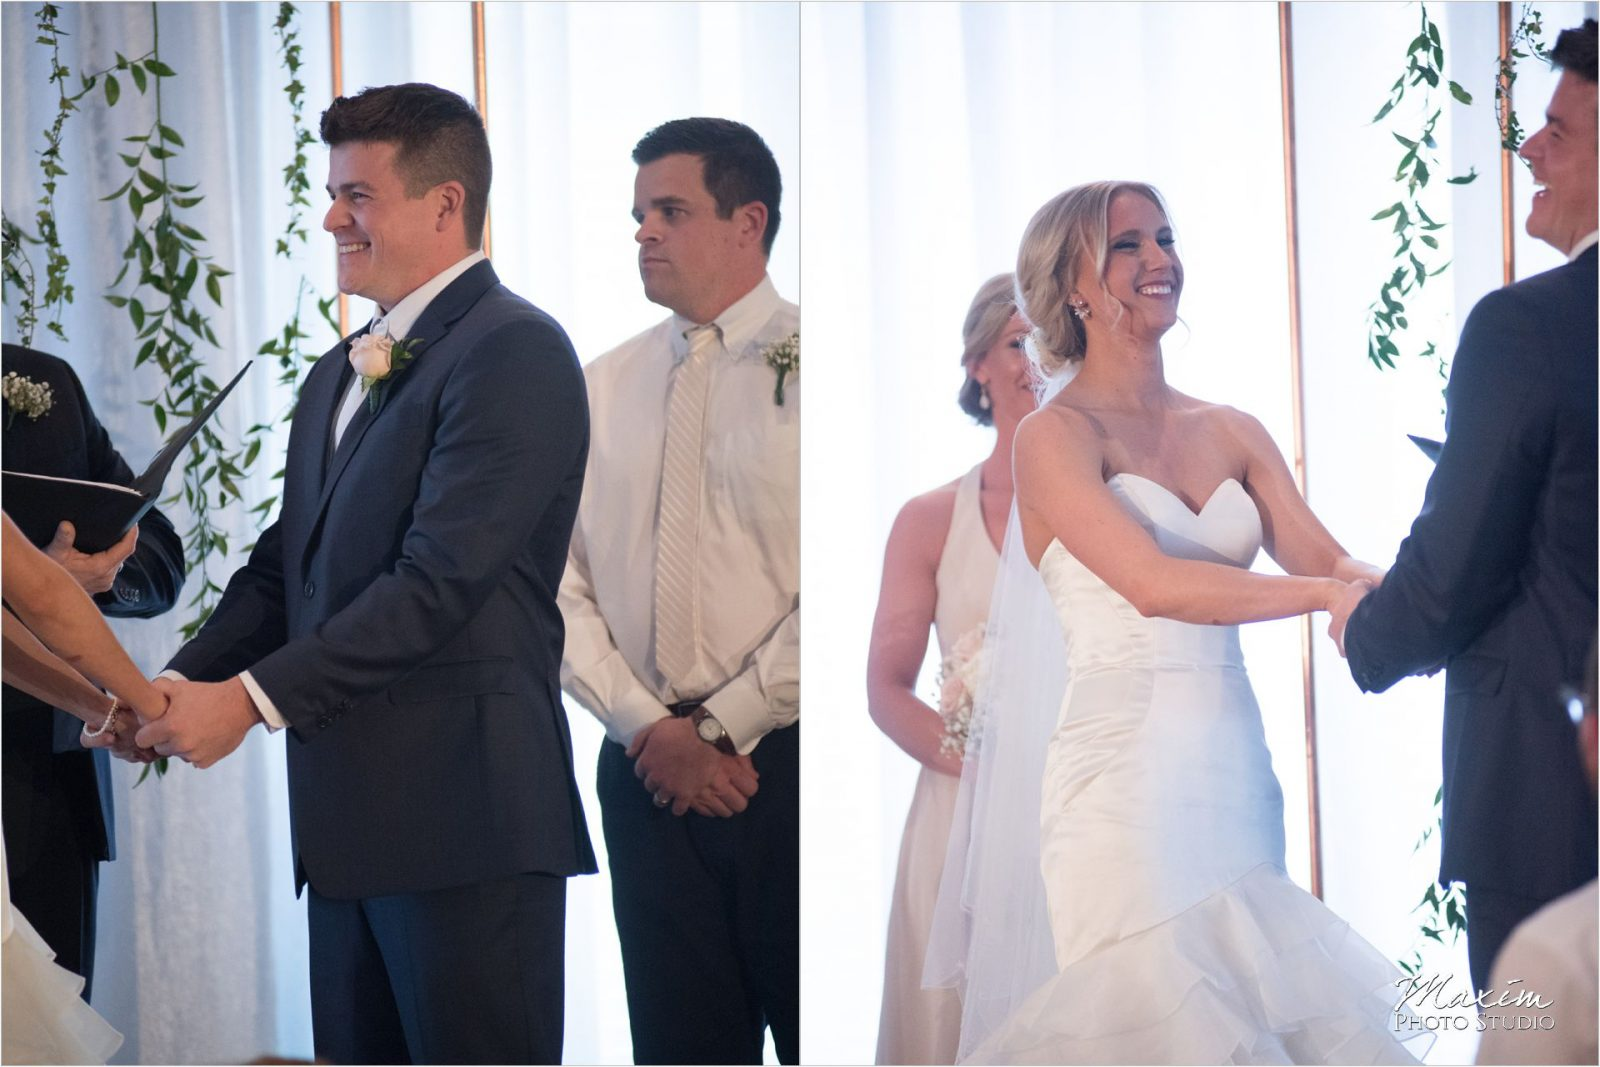 The Phoenix Cincinnati Wedding Ceremony Bride Groom